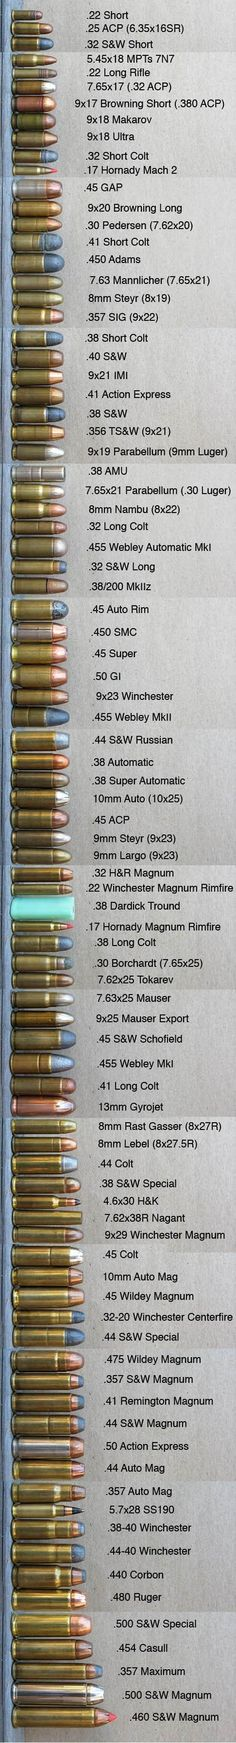 Detailed handgun ammunition Save those thumbs & bucks w/ free shipping on this magloader I purchased mine http://www.amazon.com/shops/raeind No more leaving the last round out because it is too hard to get in. And you will load them faster and easier, to maximize your shooting enjoyment. loader does it all easily, painlessly, and perfectly reliably #airsoft #equipamentosairsoft #pistolasairsoft #fuzilairsoft